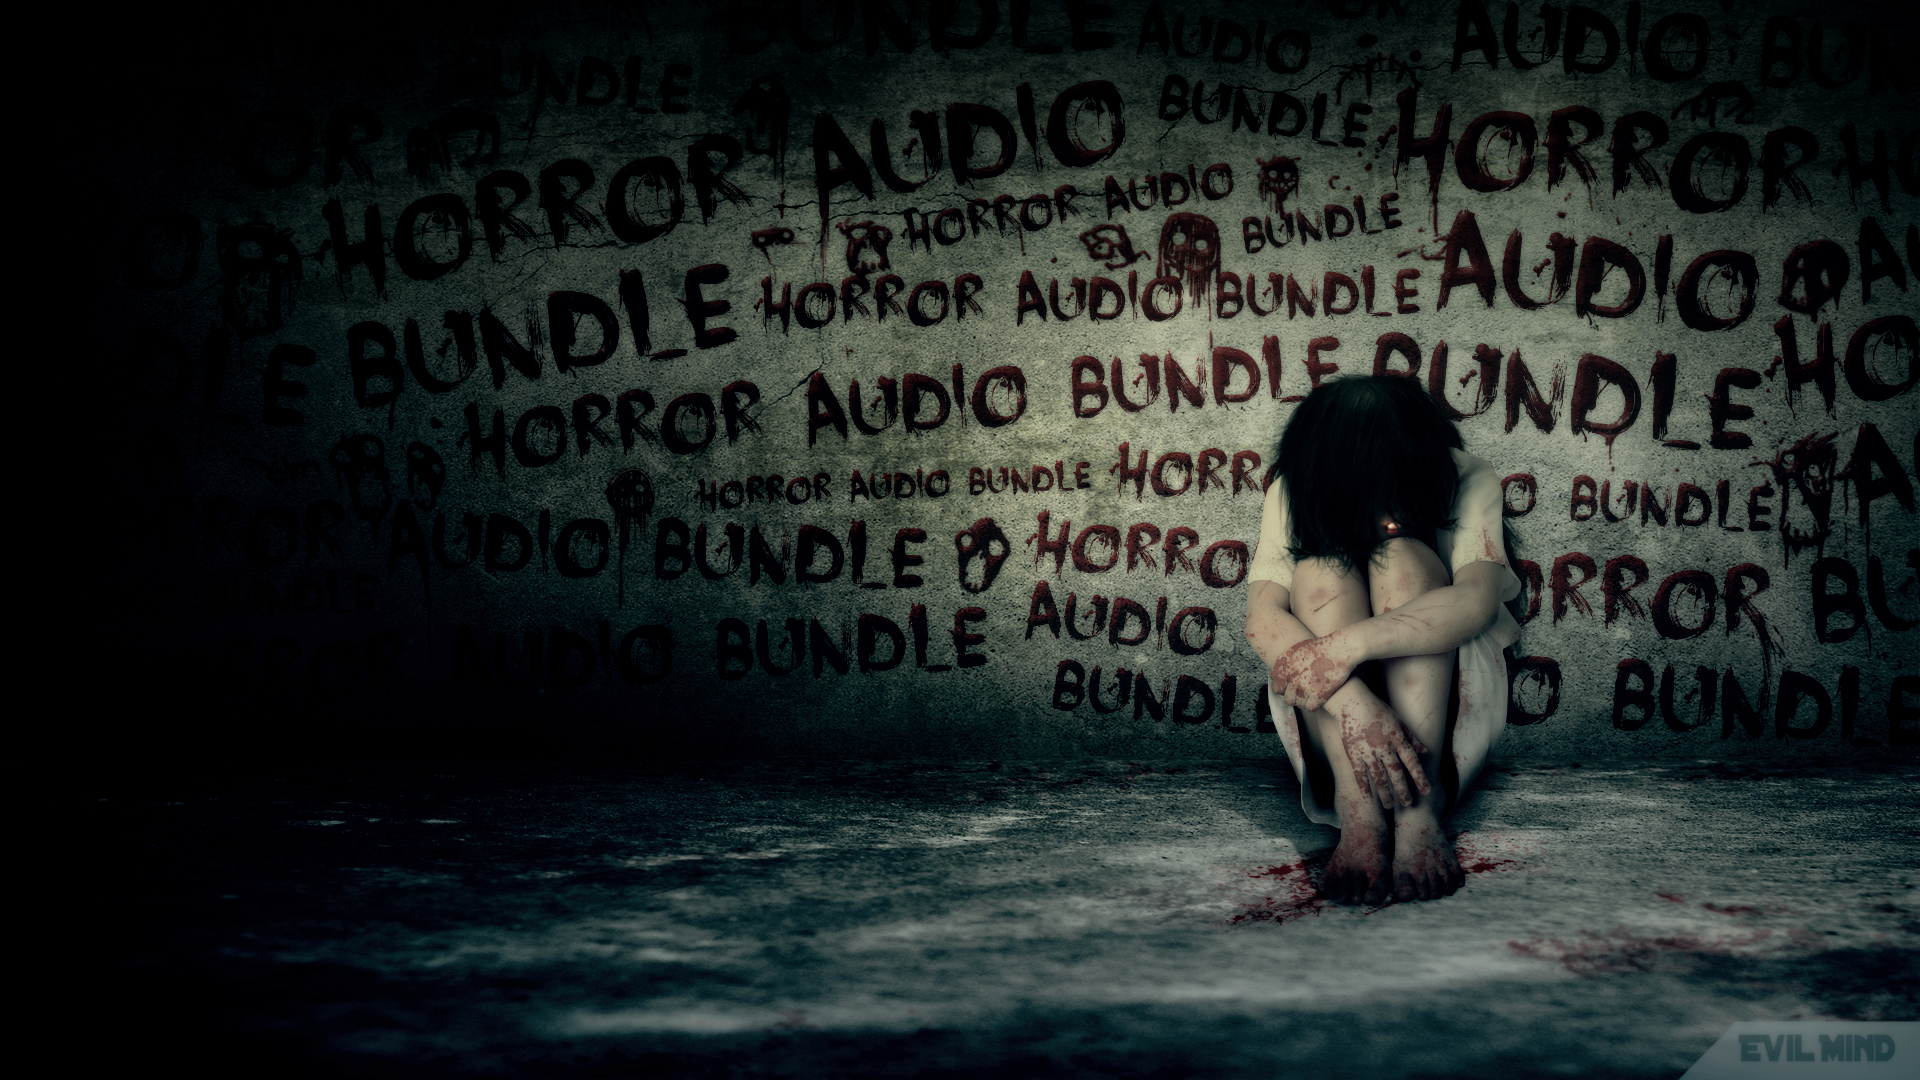 Horror Audio Bundle (Evil Mind)